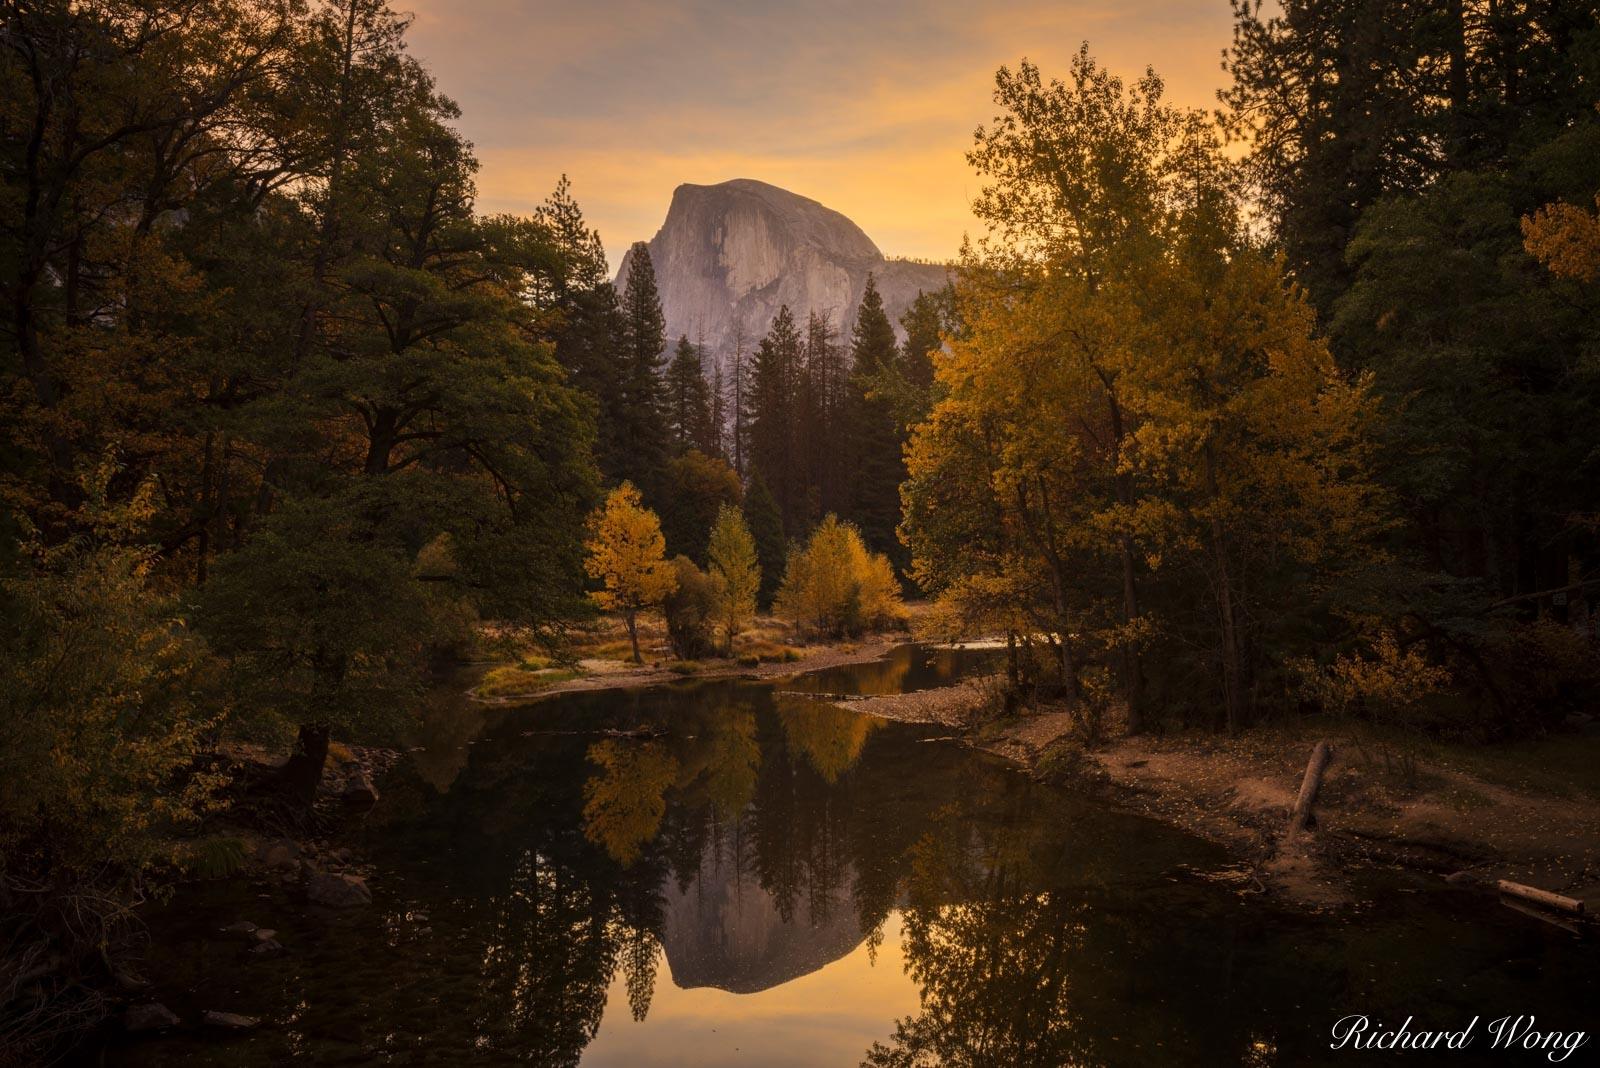 California, alpenglow, autumn, fall colors, fall season, foliage, forest, granite, half dome, landscape, merced river, nature, north america, outdoors, outside, reflection, scenery, scenic, seasons, s, photo